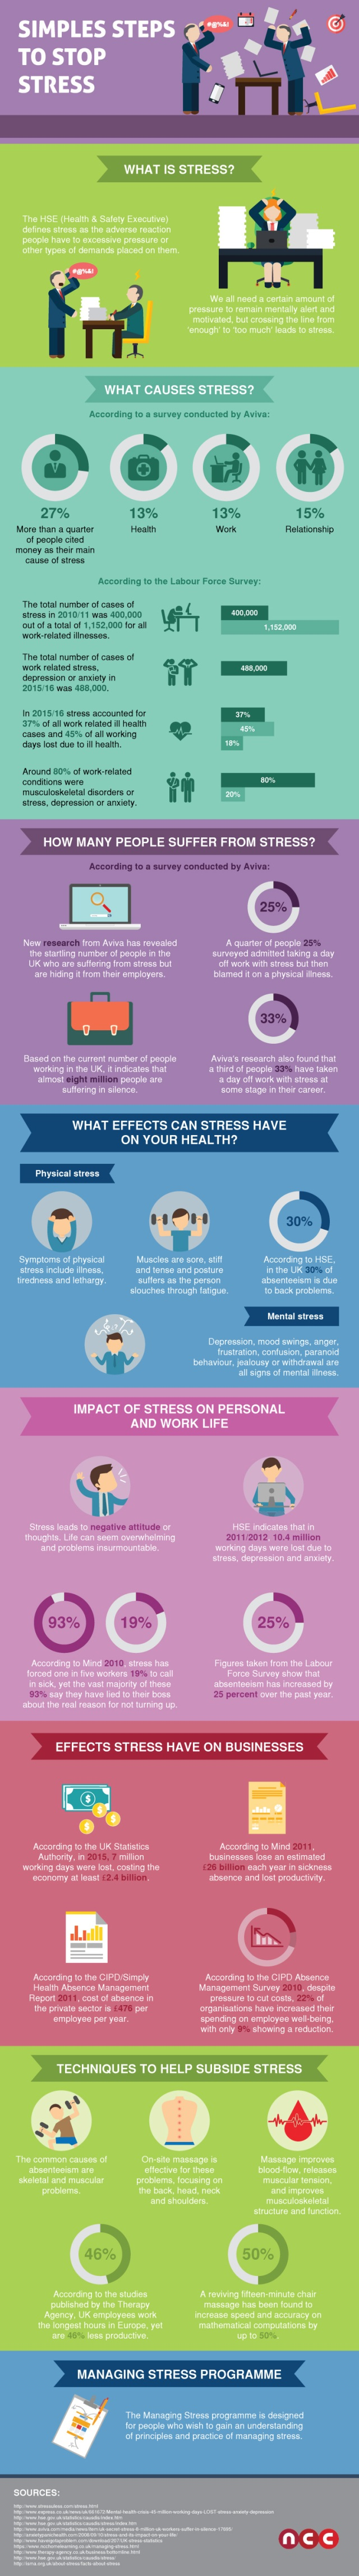 [INFOGRAPHIC] Simple Steps to Subside Stress | by NCC Home Learning